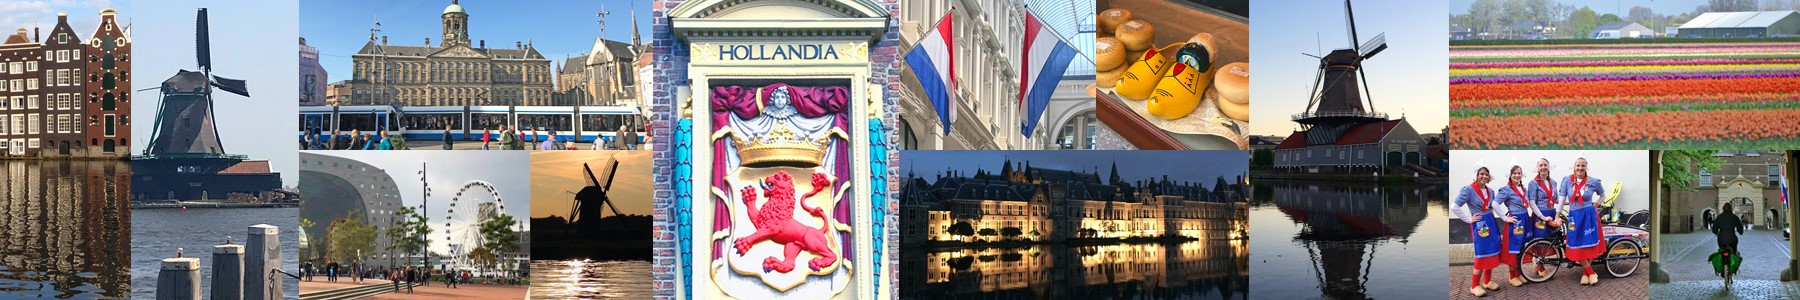 Netherlands Retail Stores & Malls | ExpatINFO Holland